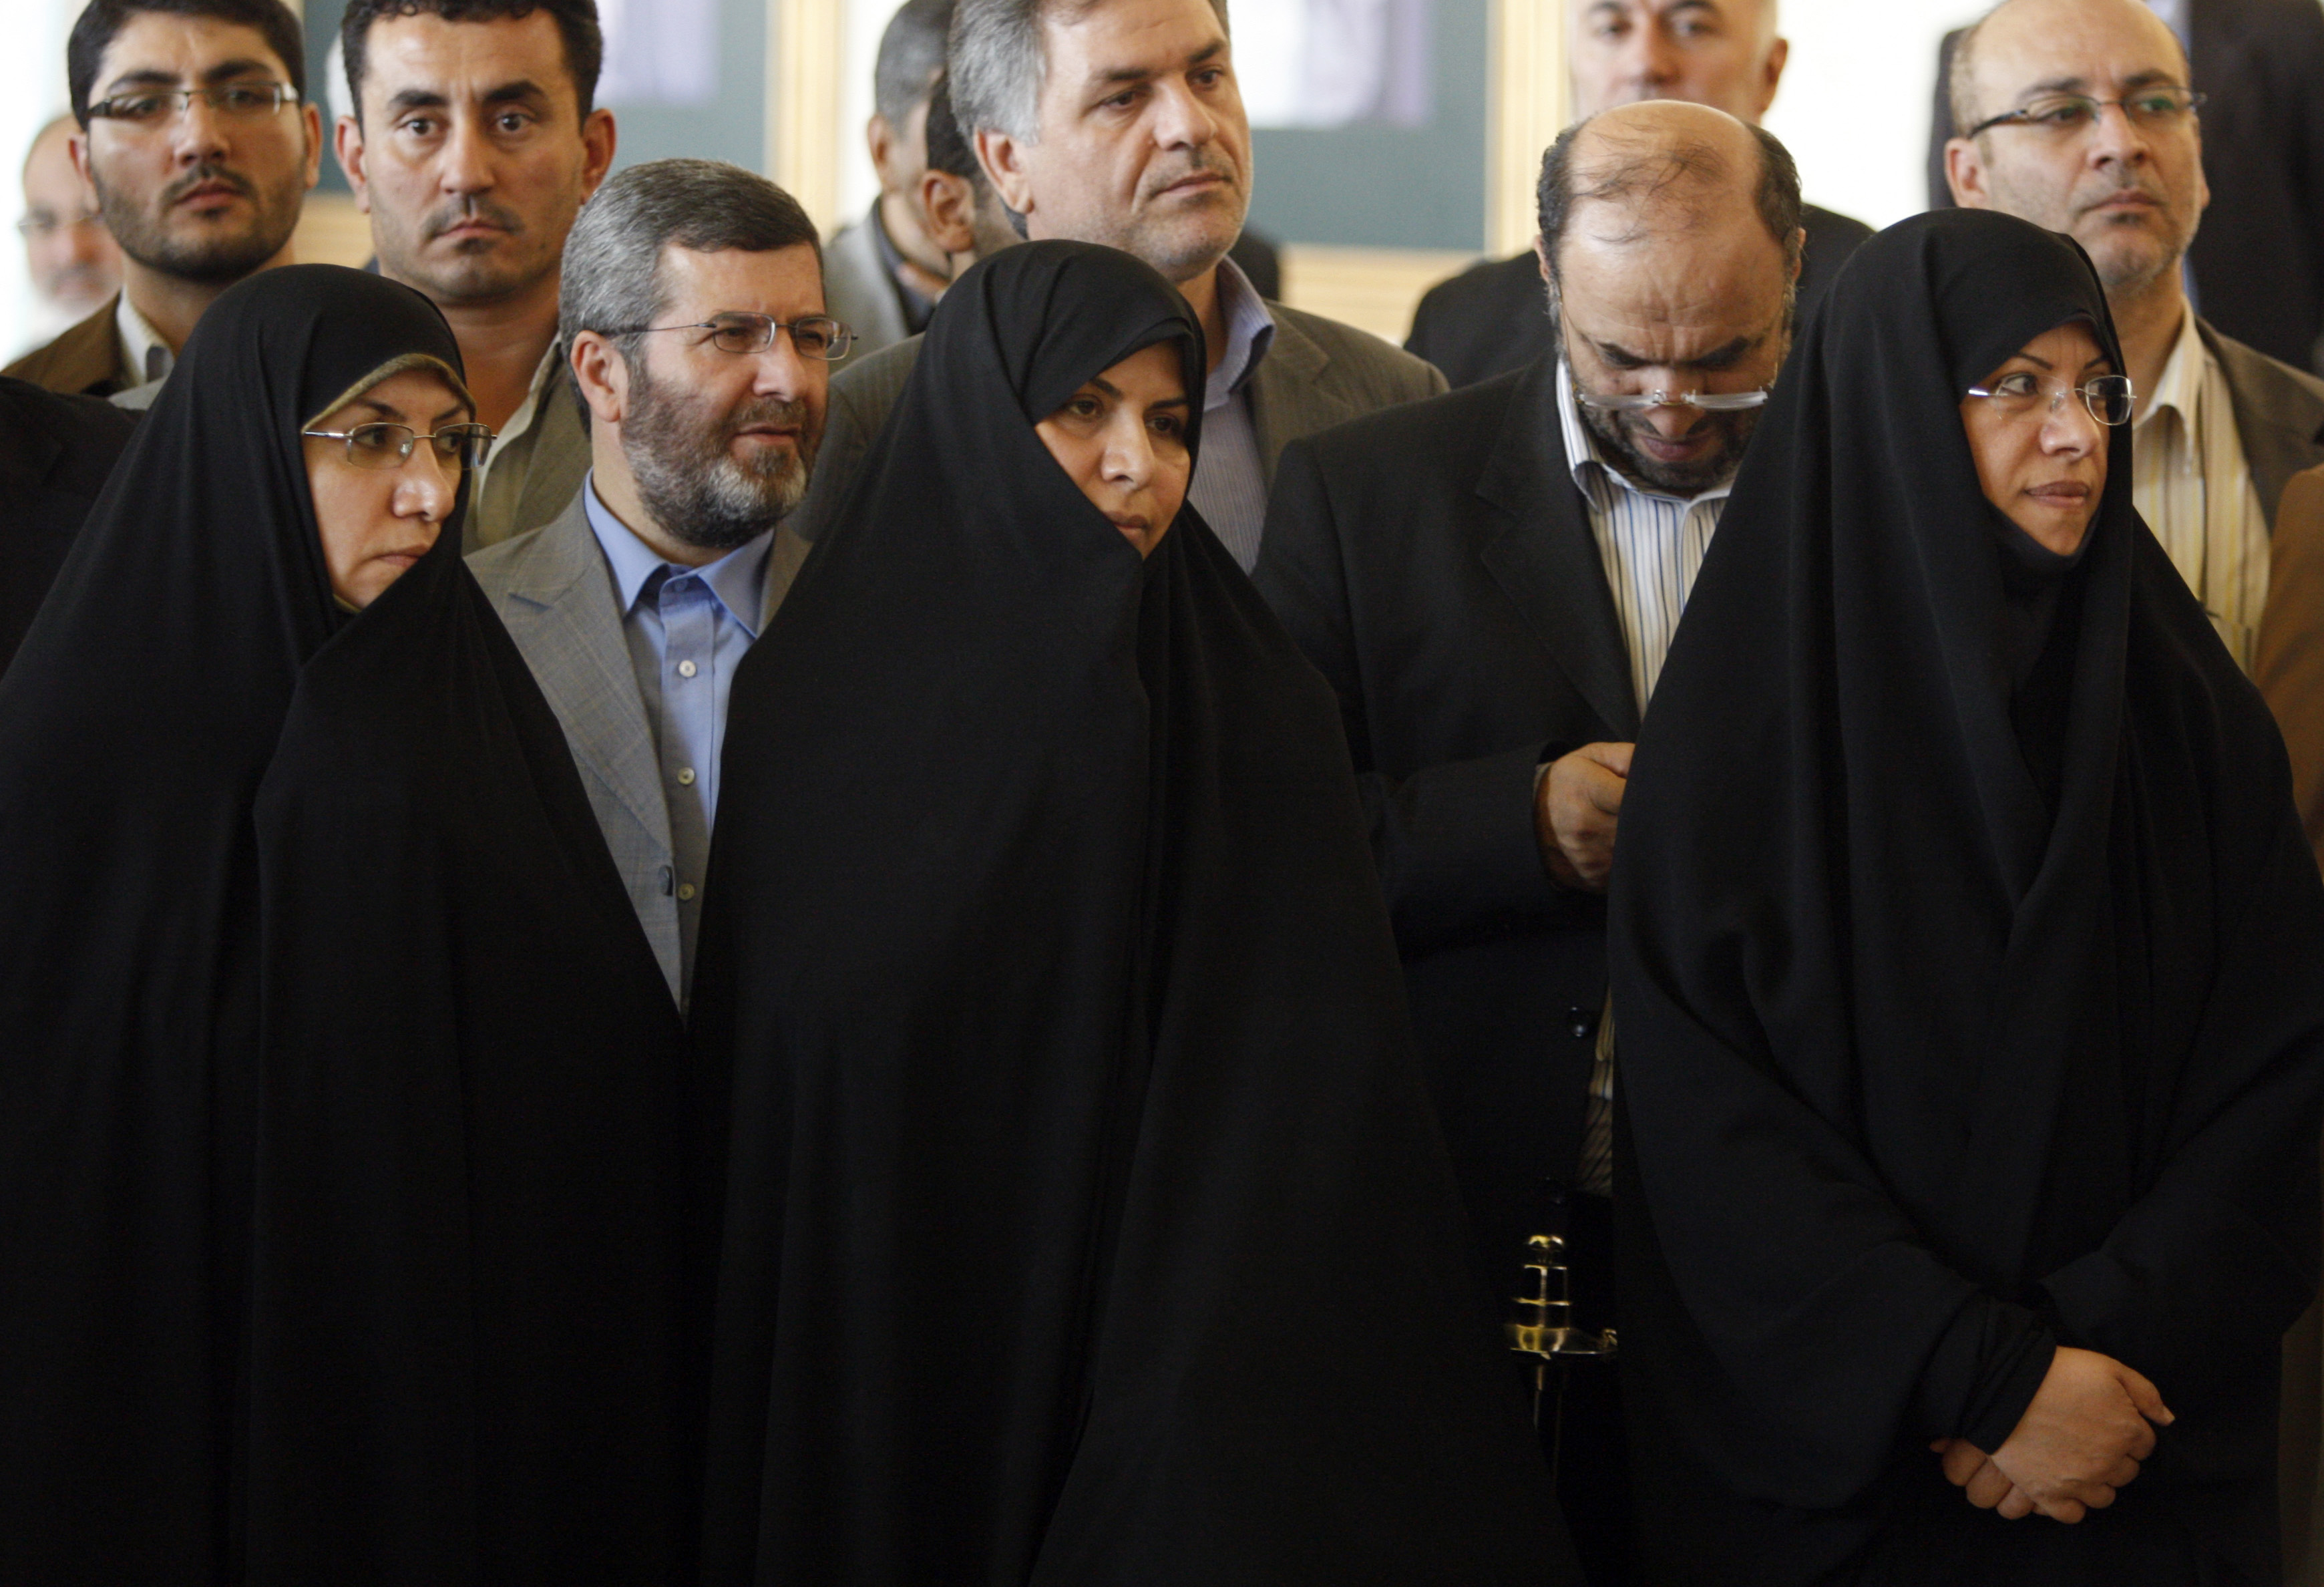 FILE - Then-Iranian Health Minister Marzieh Vahid Dastjerdi, center, stands with lawmakers during a press briefing in Tehran, Iran, Sept. 3, 2009.